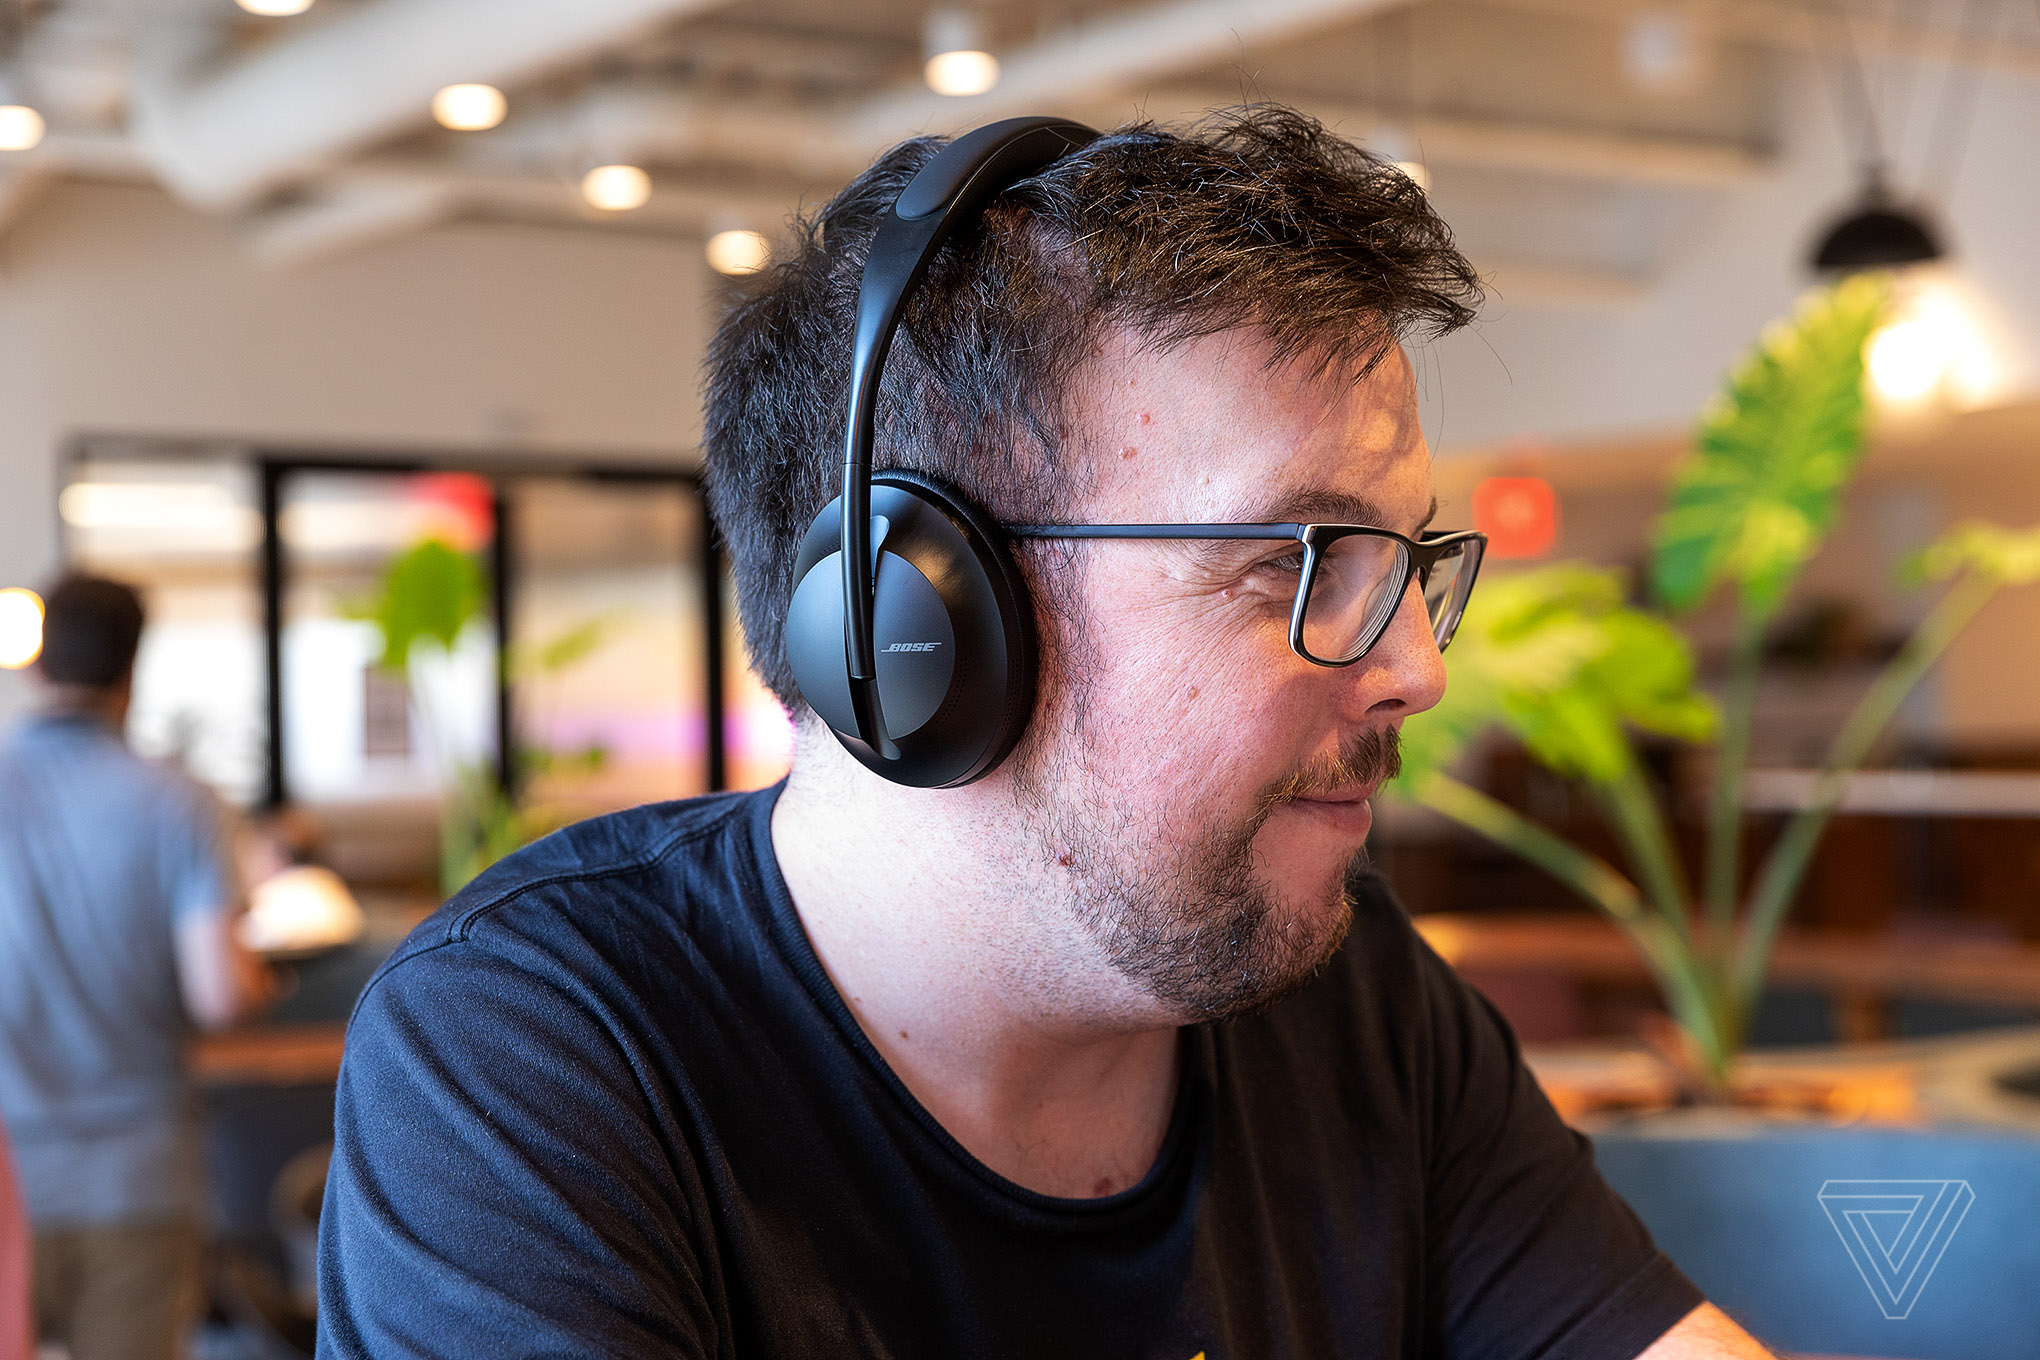 Bose Noise Cancelling Headphones 700 review: taking back the